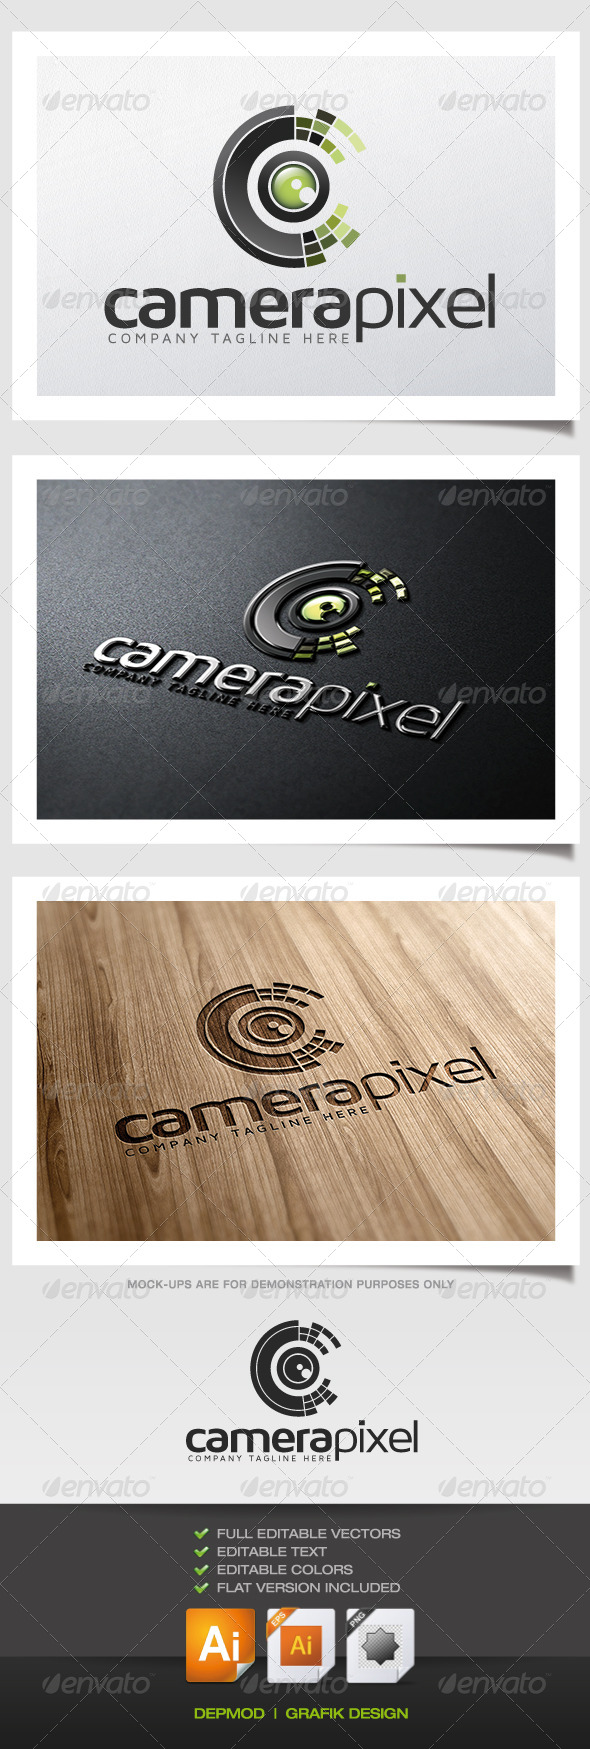 GraphicRiver Camera Pixel V.02 5540244